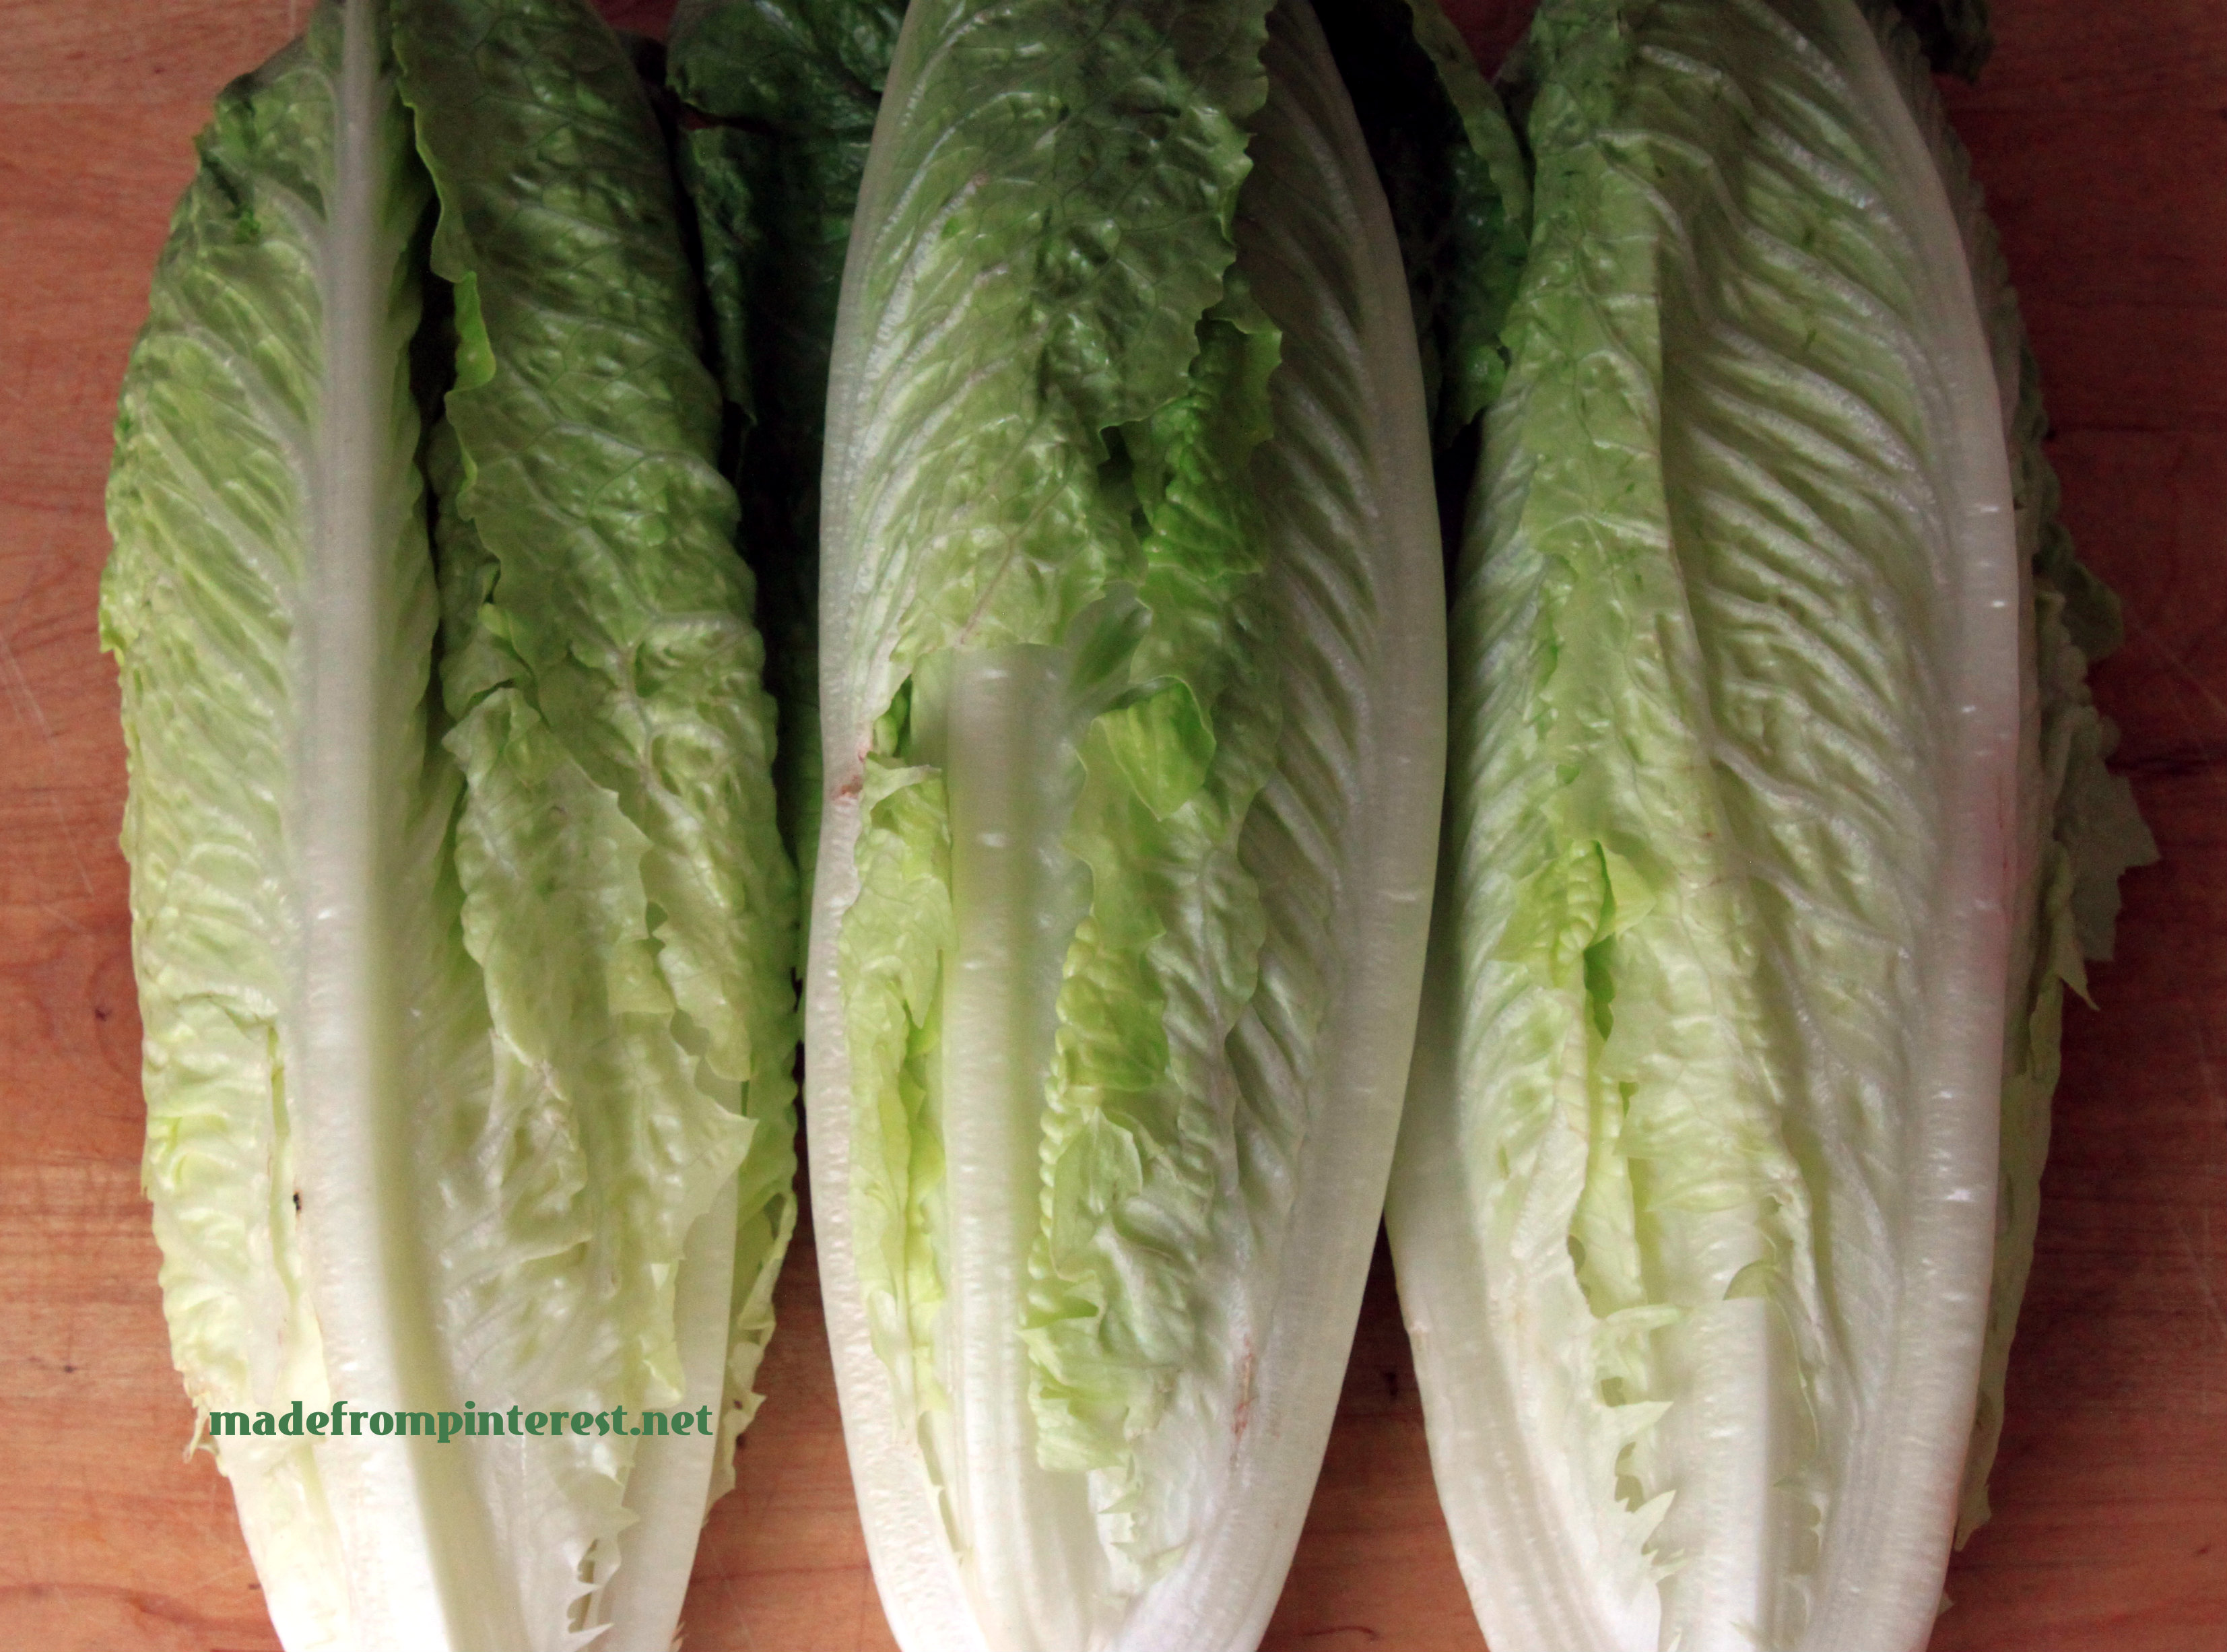 Three heads of lettuce stored four ways to find best method of storage by madefrompinterest.net